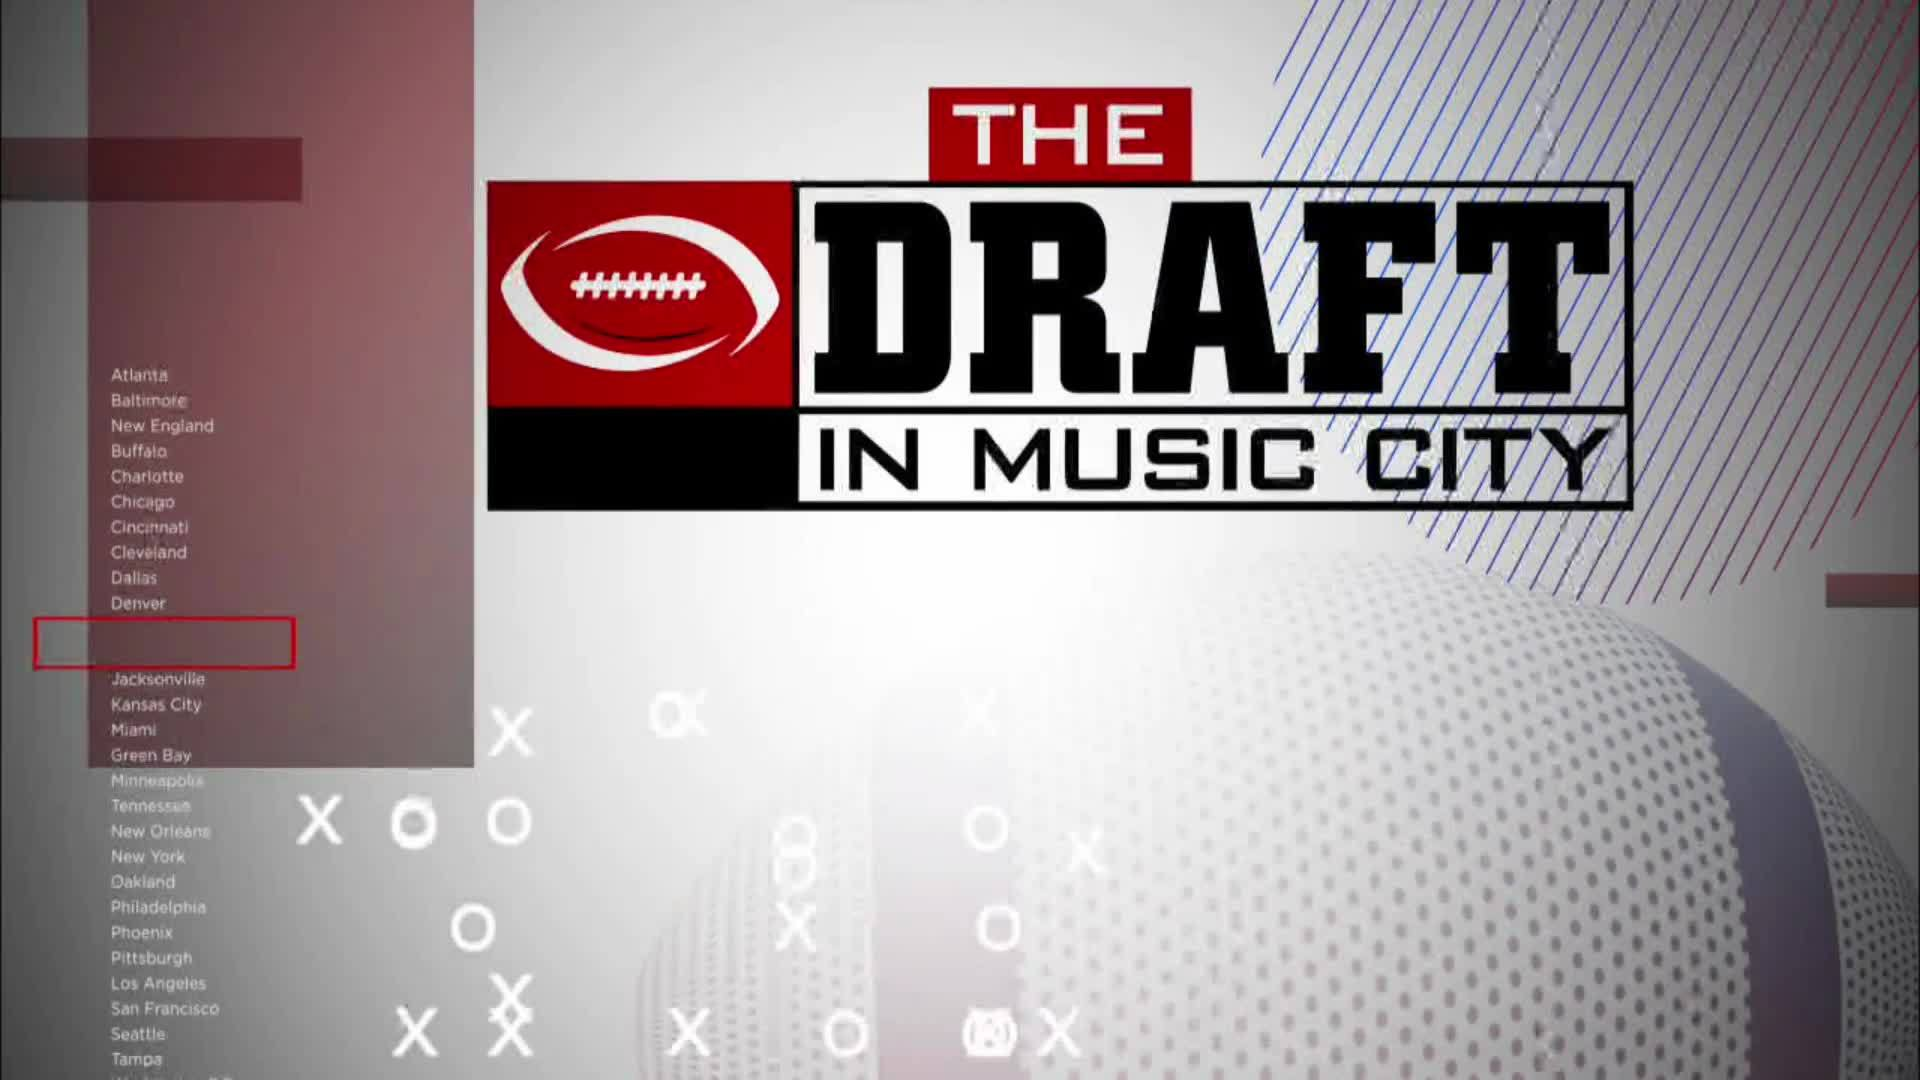 Prep_for_The_NFL_Draft_in_Music_City_beg_2_20190329221401